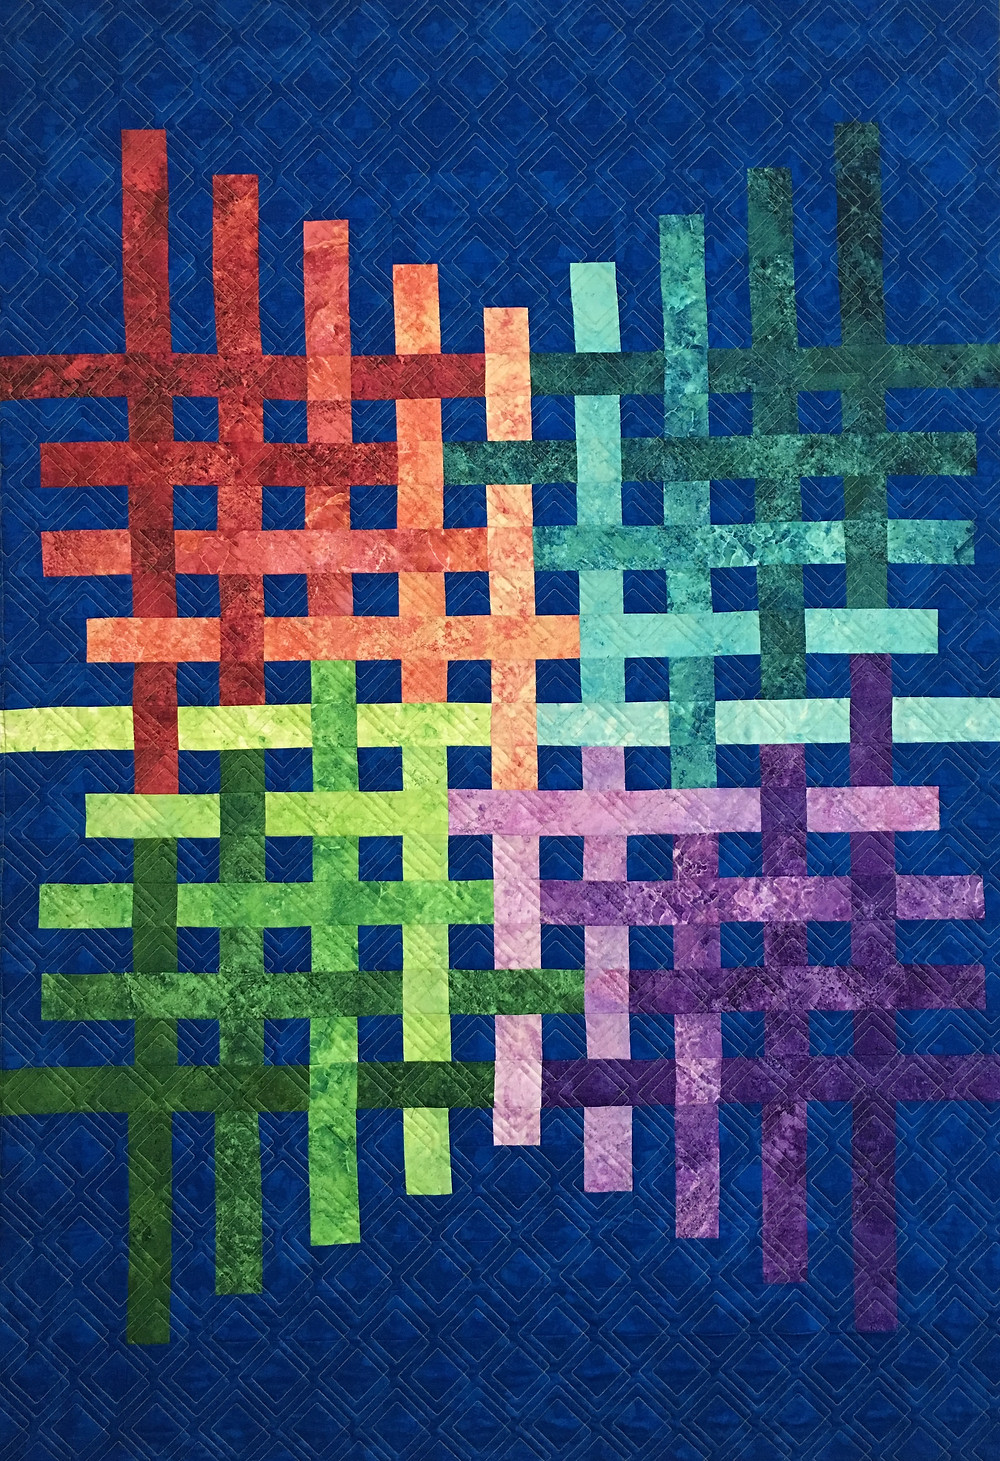 Laura's truly Modern Quilt in a blue background